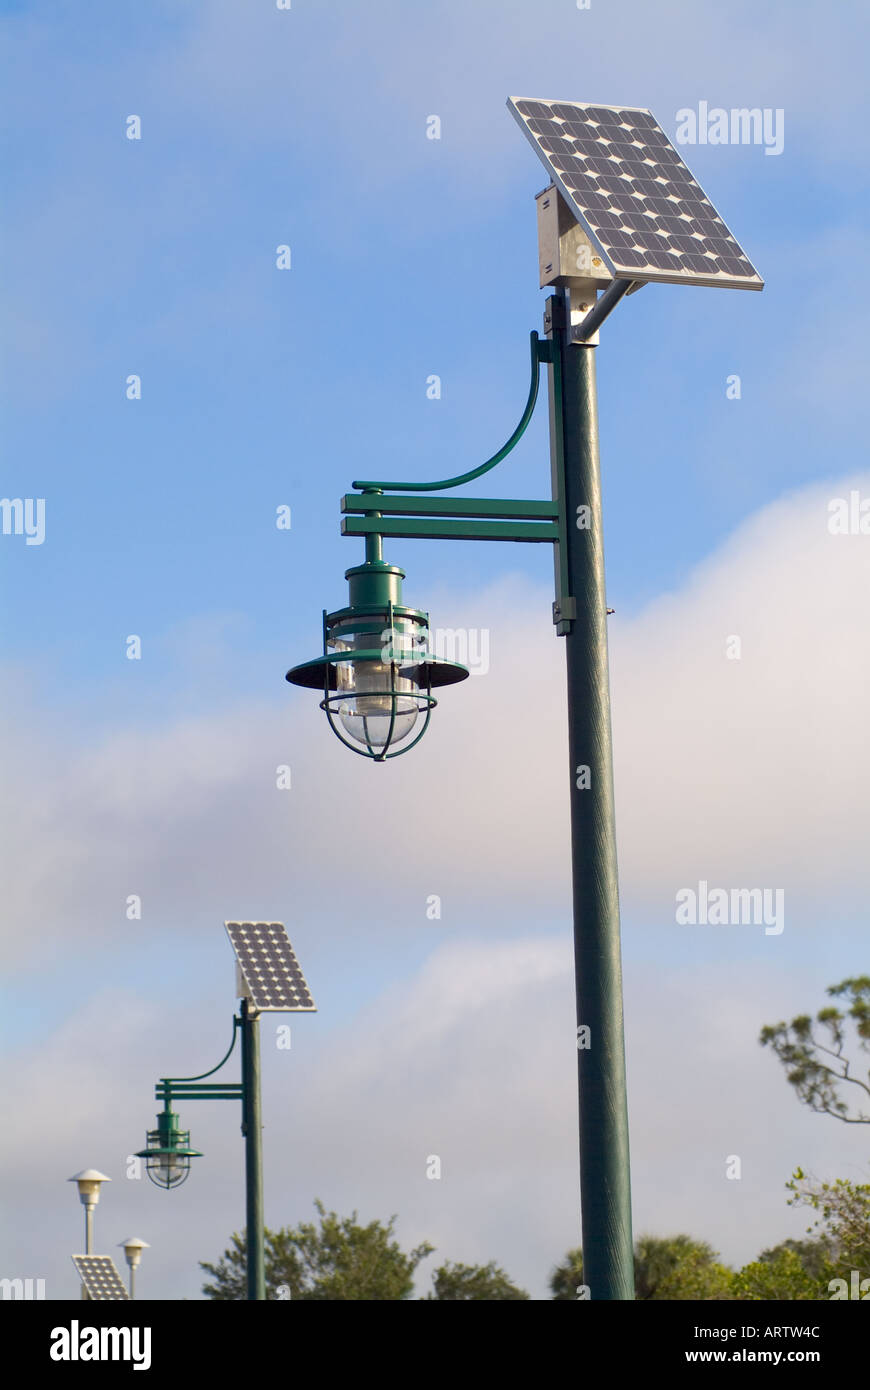 solar powered lights lighting outdoor illumination alternative energy sources panels - Stock Image